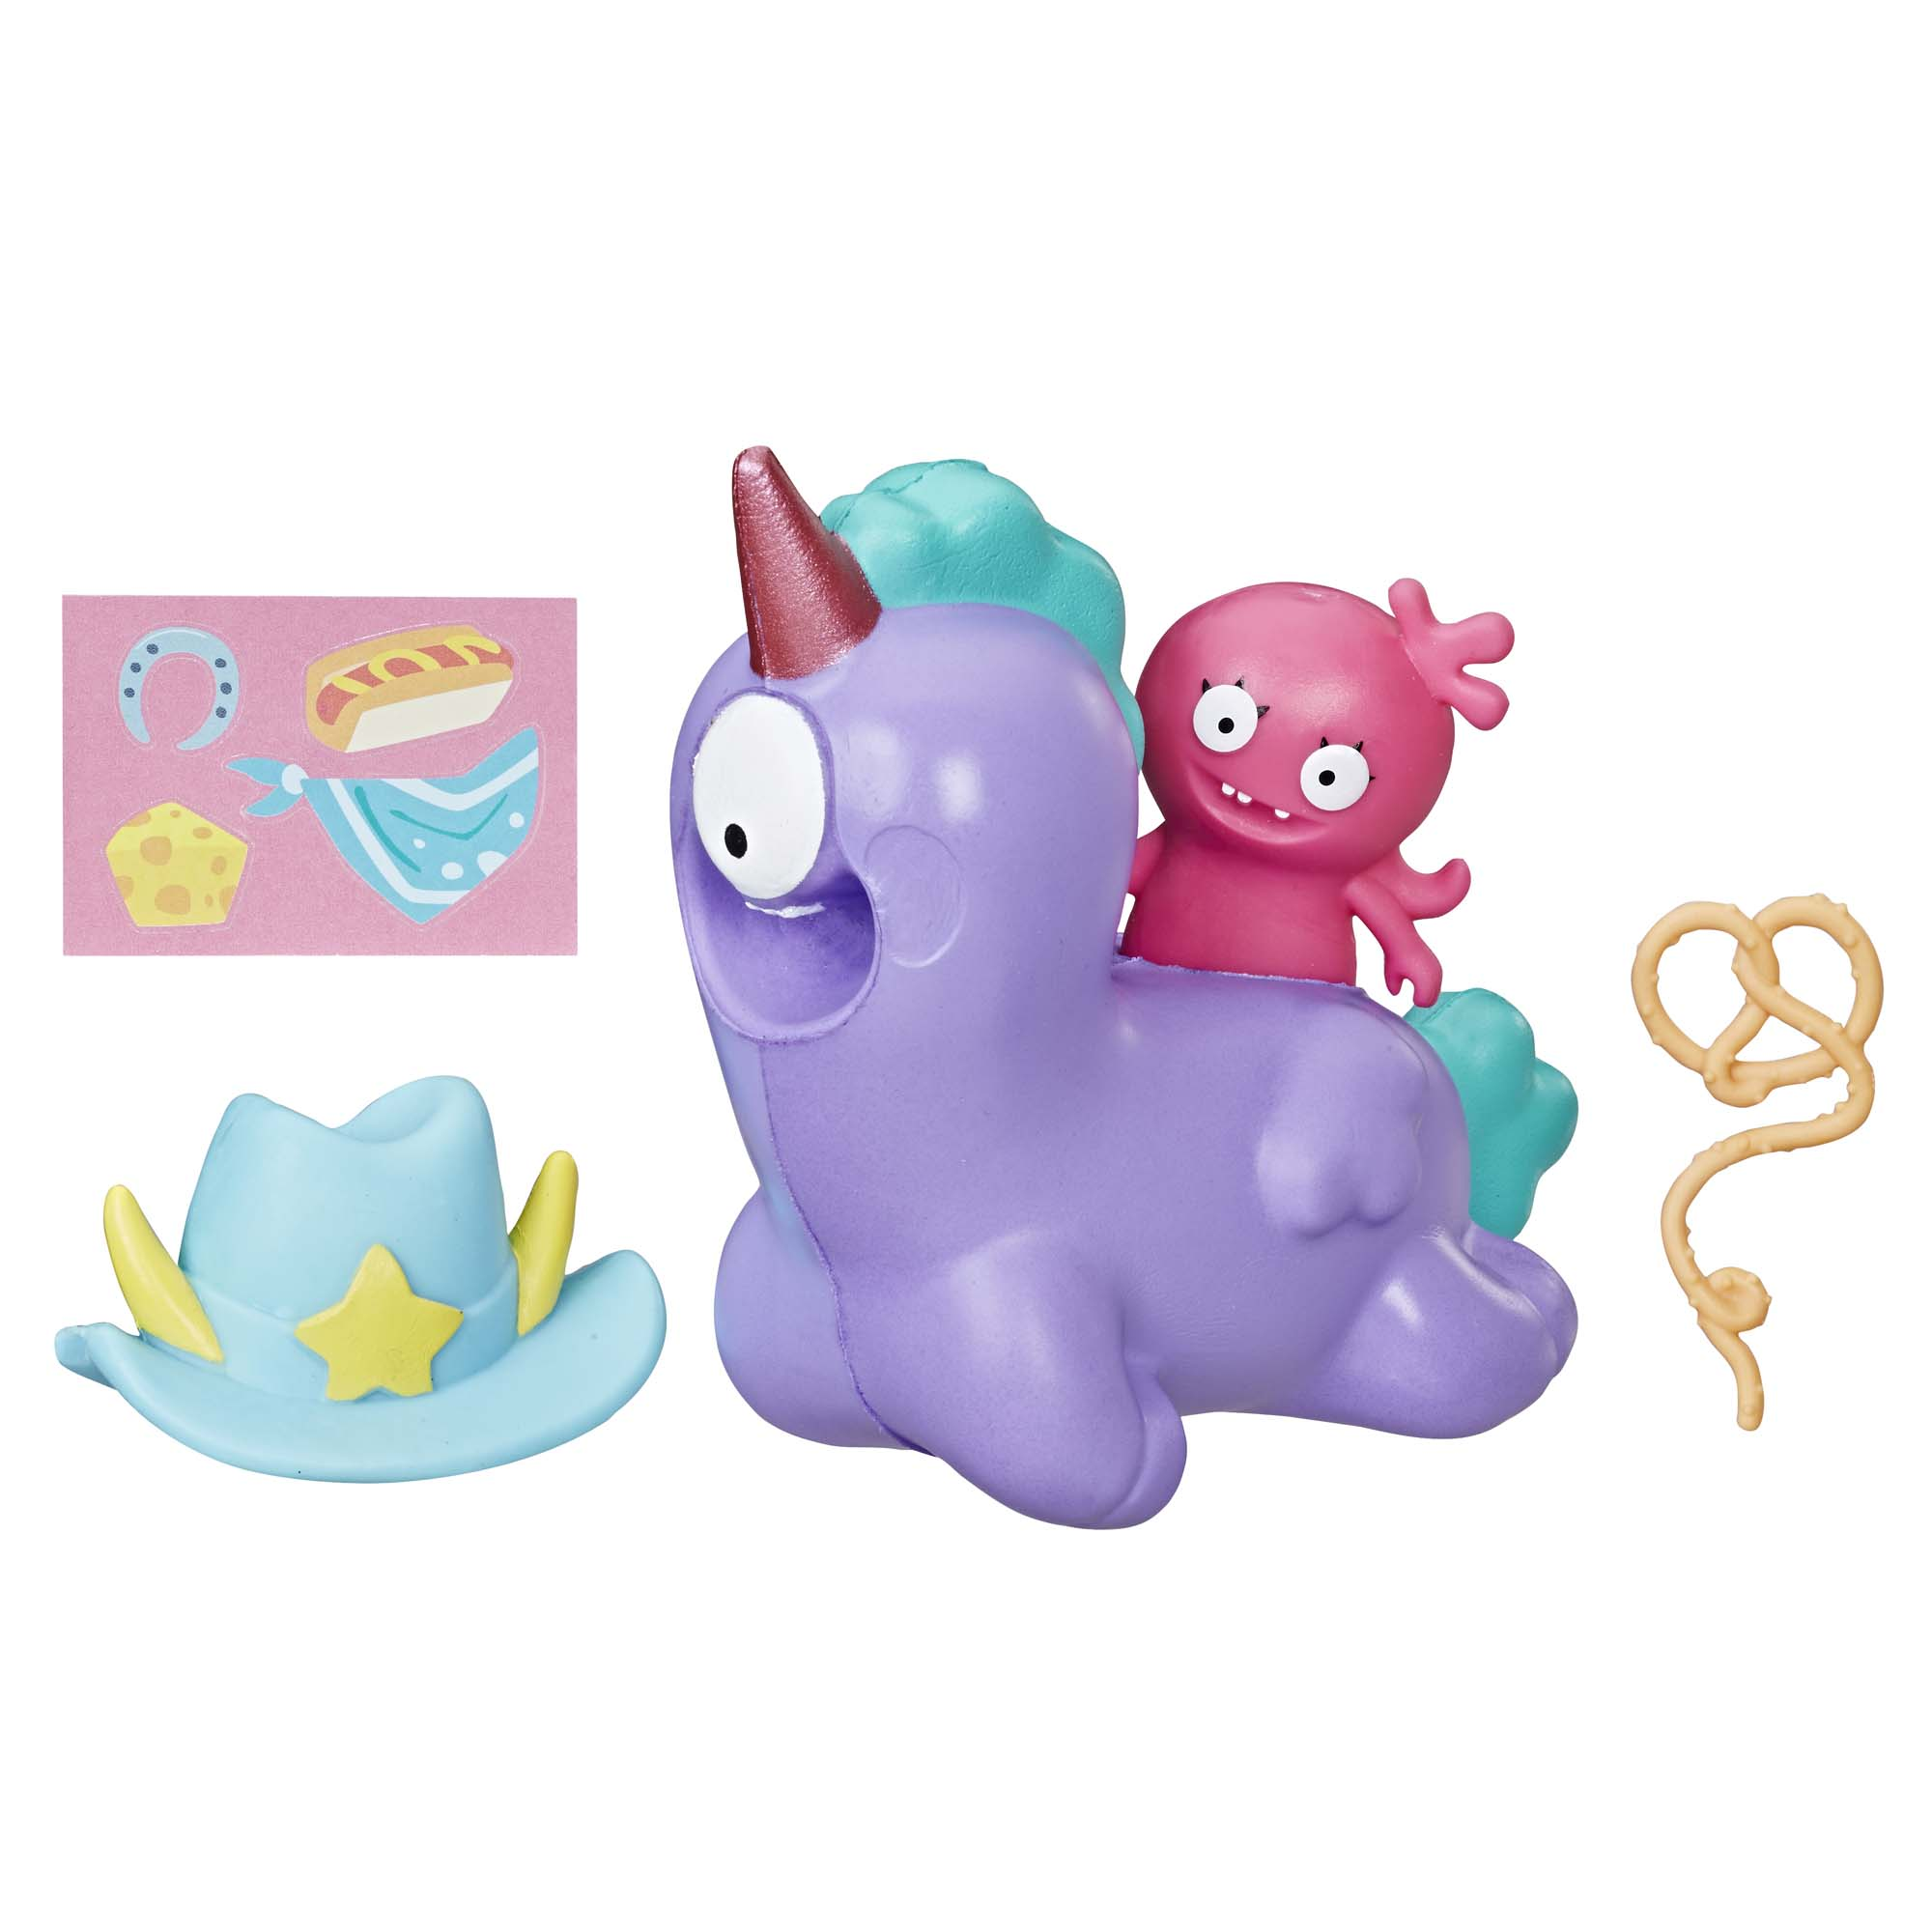 UglyDolls Moxy and Squish-and-Go Peggy, 2 Toy Figures with Accessories